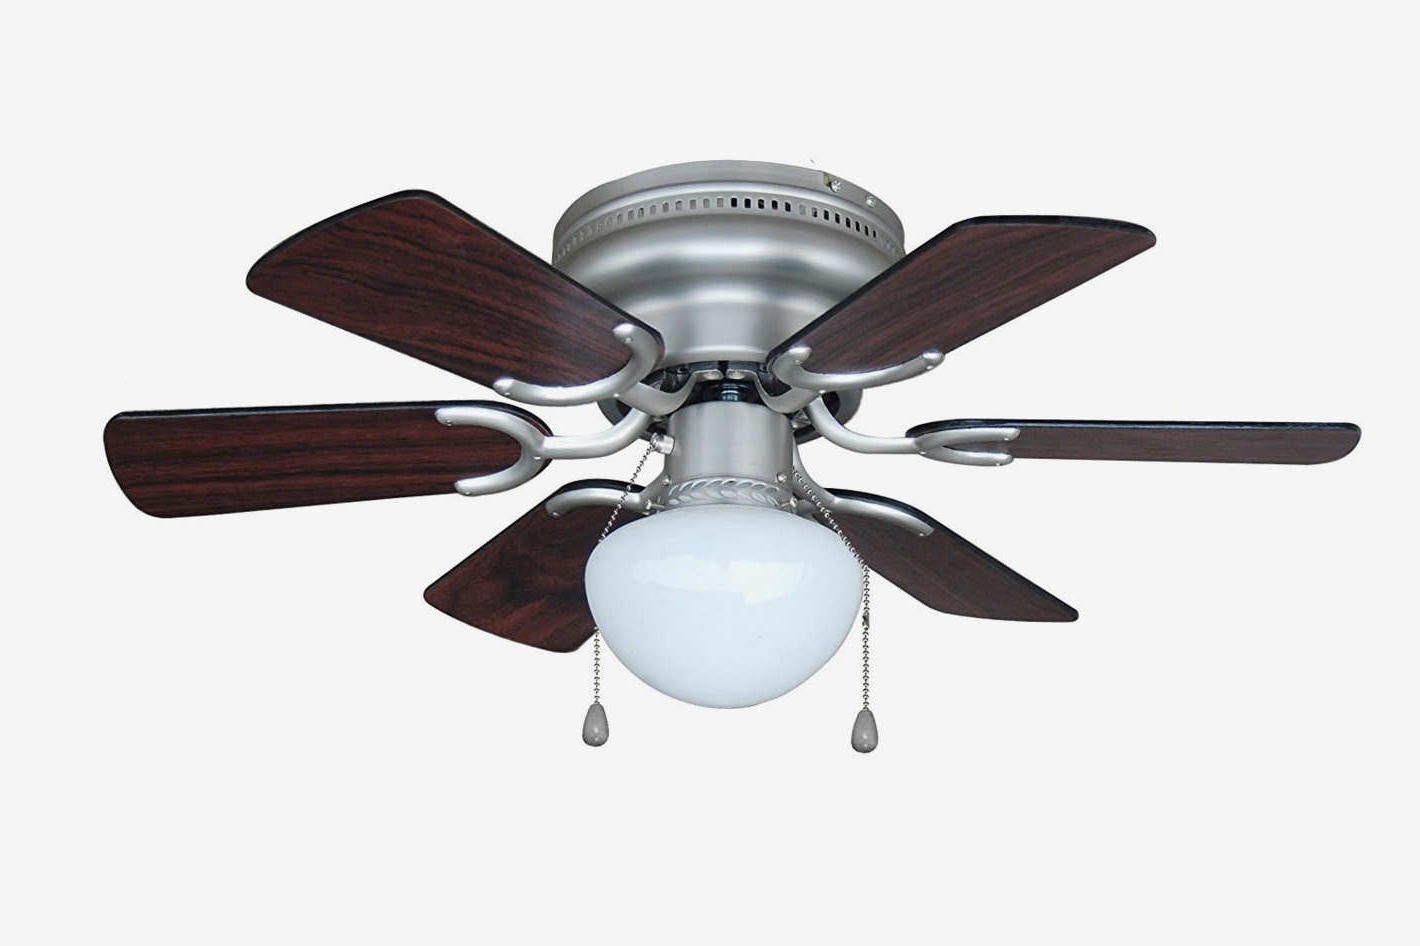 Most Recent The 9 Best Ceiling Fans On Amazon 2018 Regarding Outdoor Ceiling Fans Under $ (View 9 of 20)